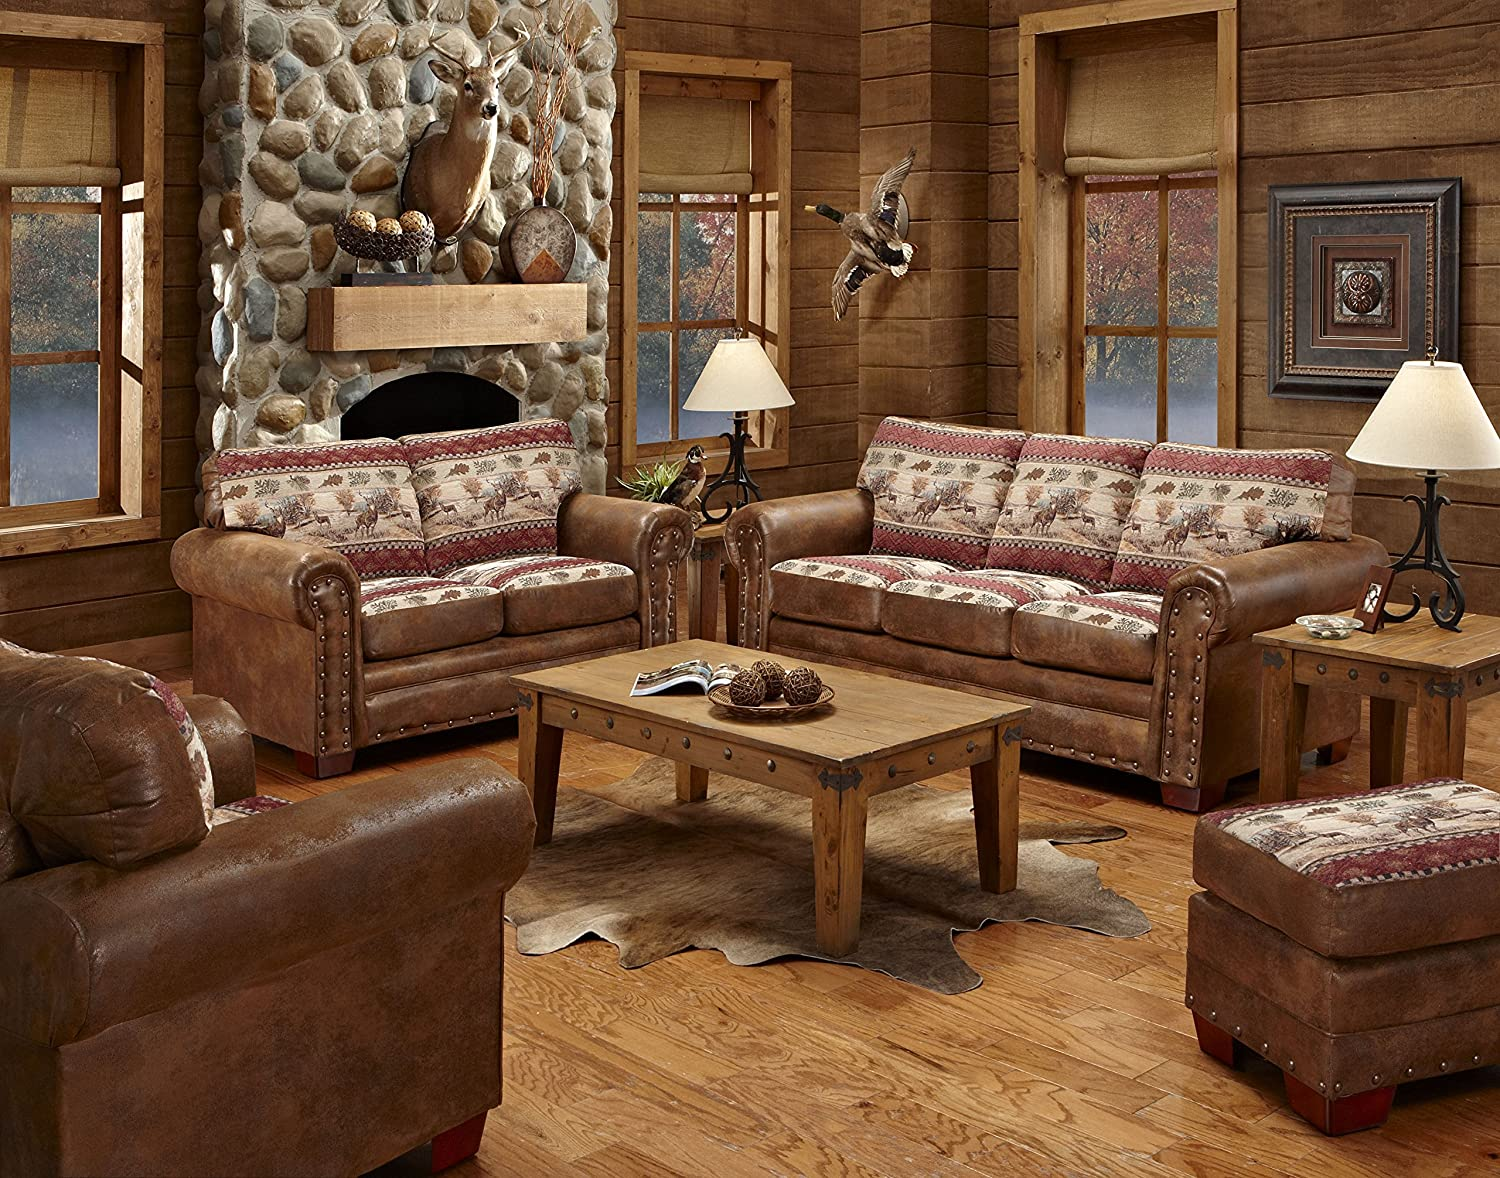 Amazon.com: American Furniture Classics 4 Piece Deer Valley Sofa: Kitchen U0026  Dining